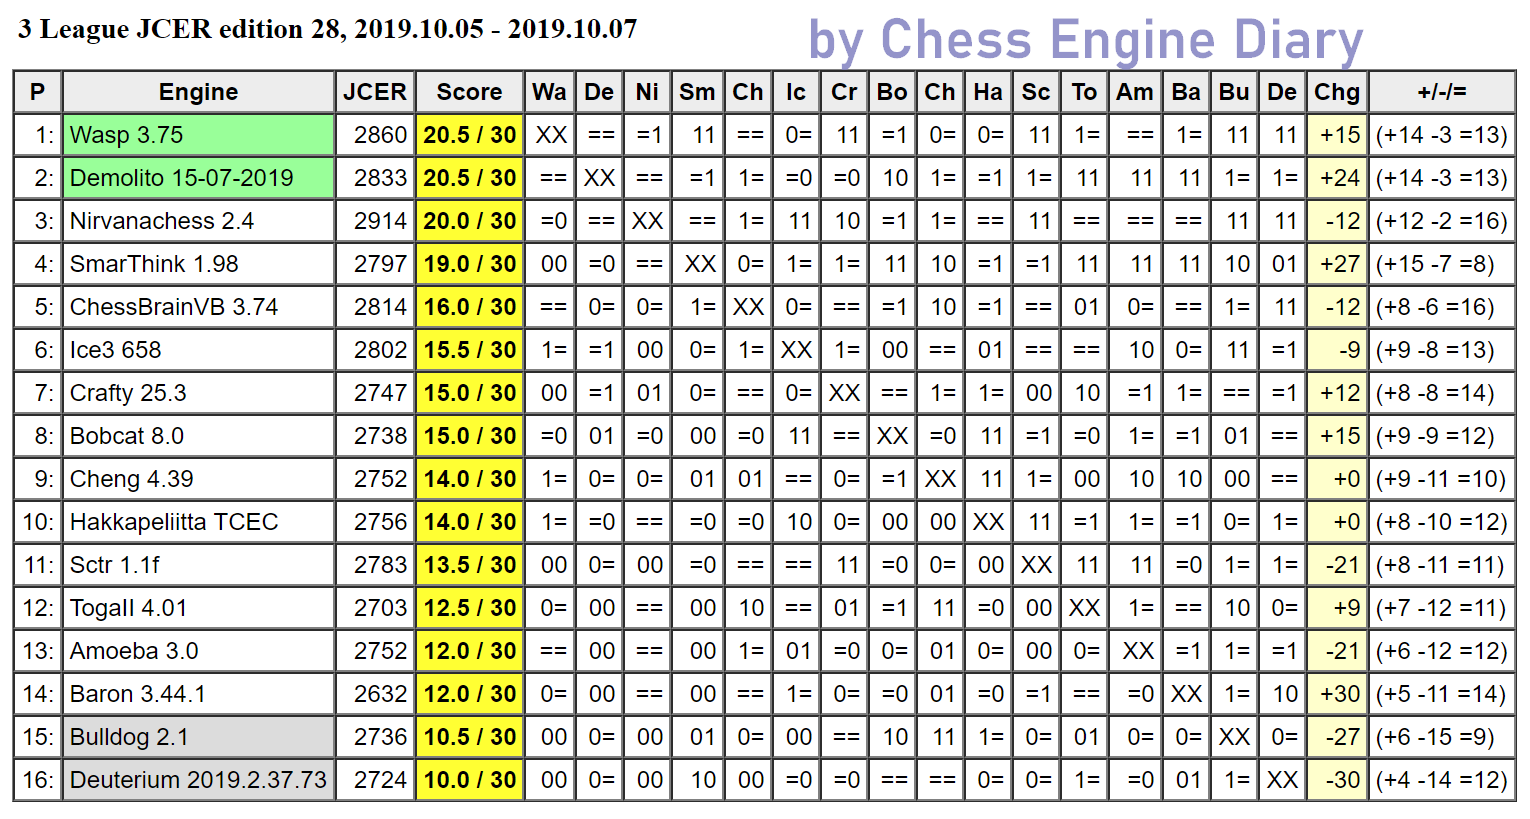 JCER (Jurek Chess Engines Rating) tournaments - Page 18 2019.10.05.3League.ed28Scid.html